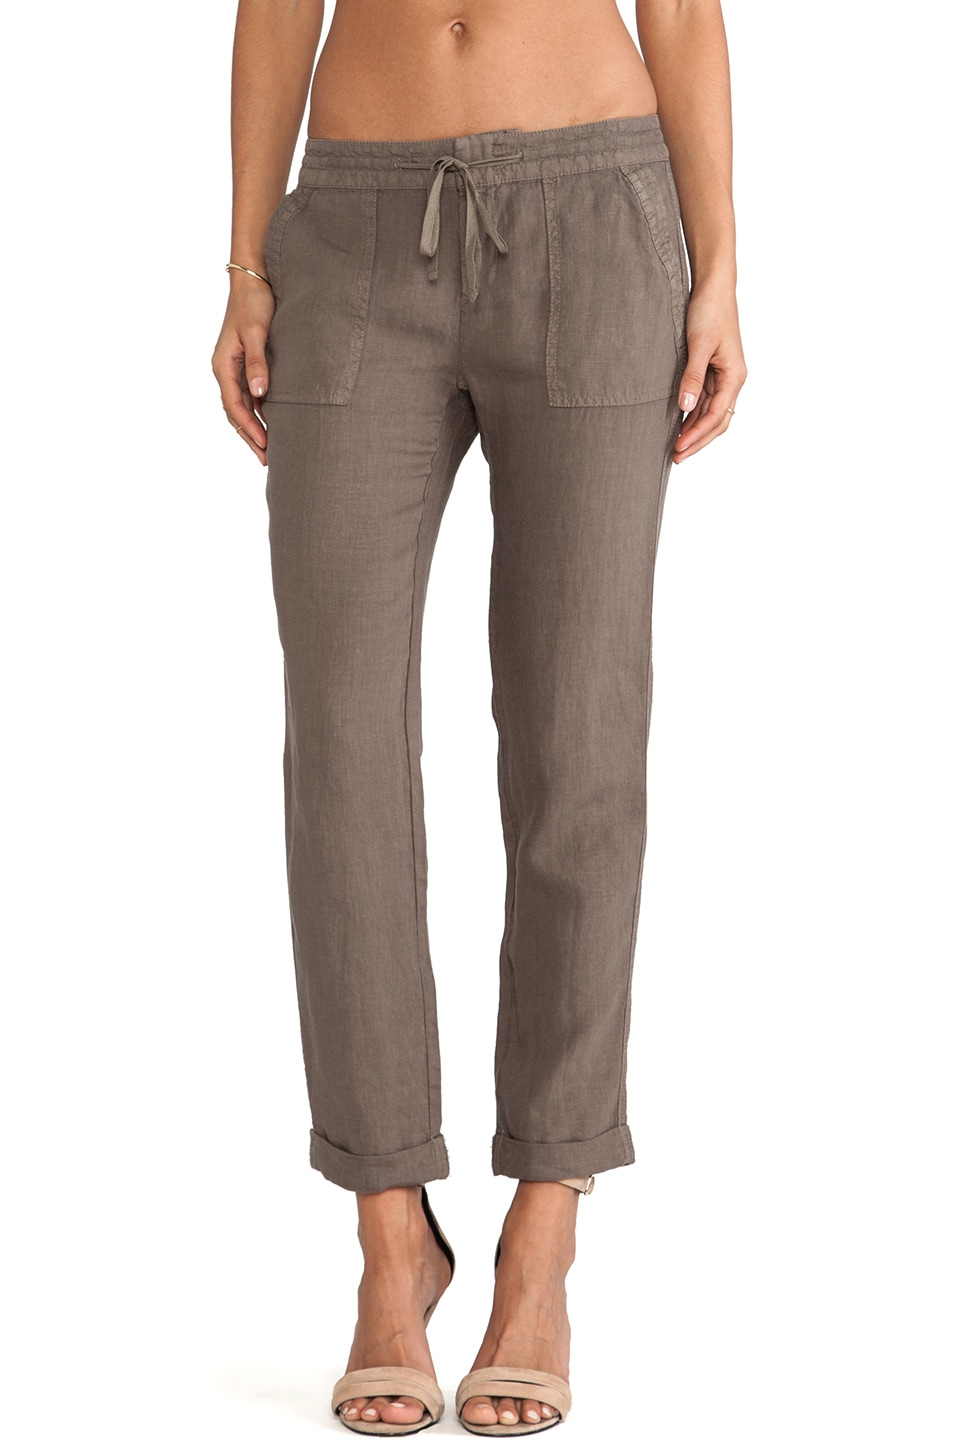 Joie Martesha Linen Pant in Fatigue